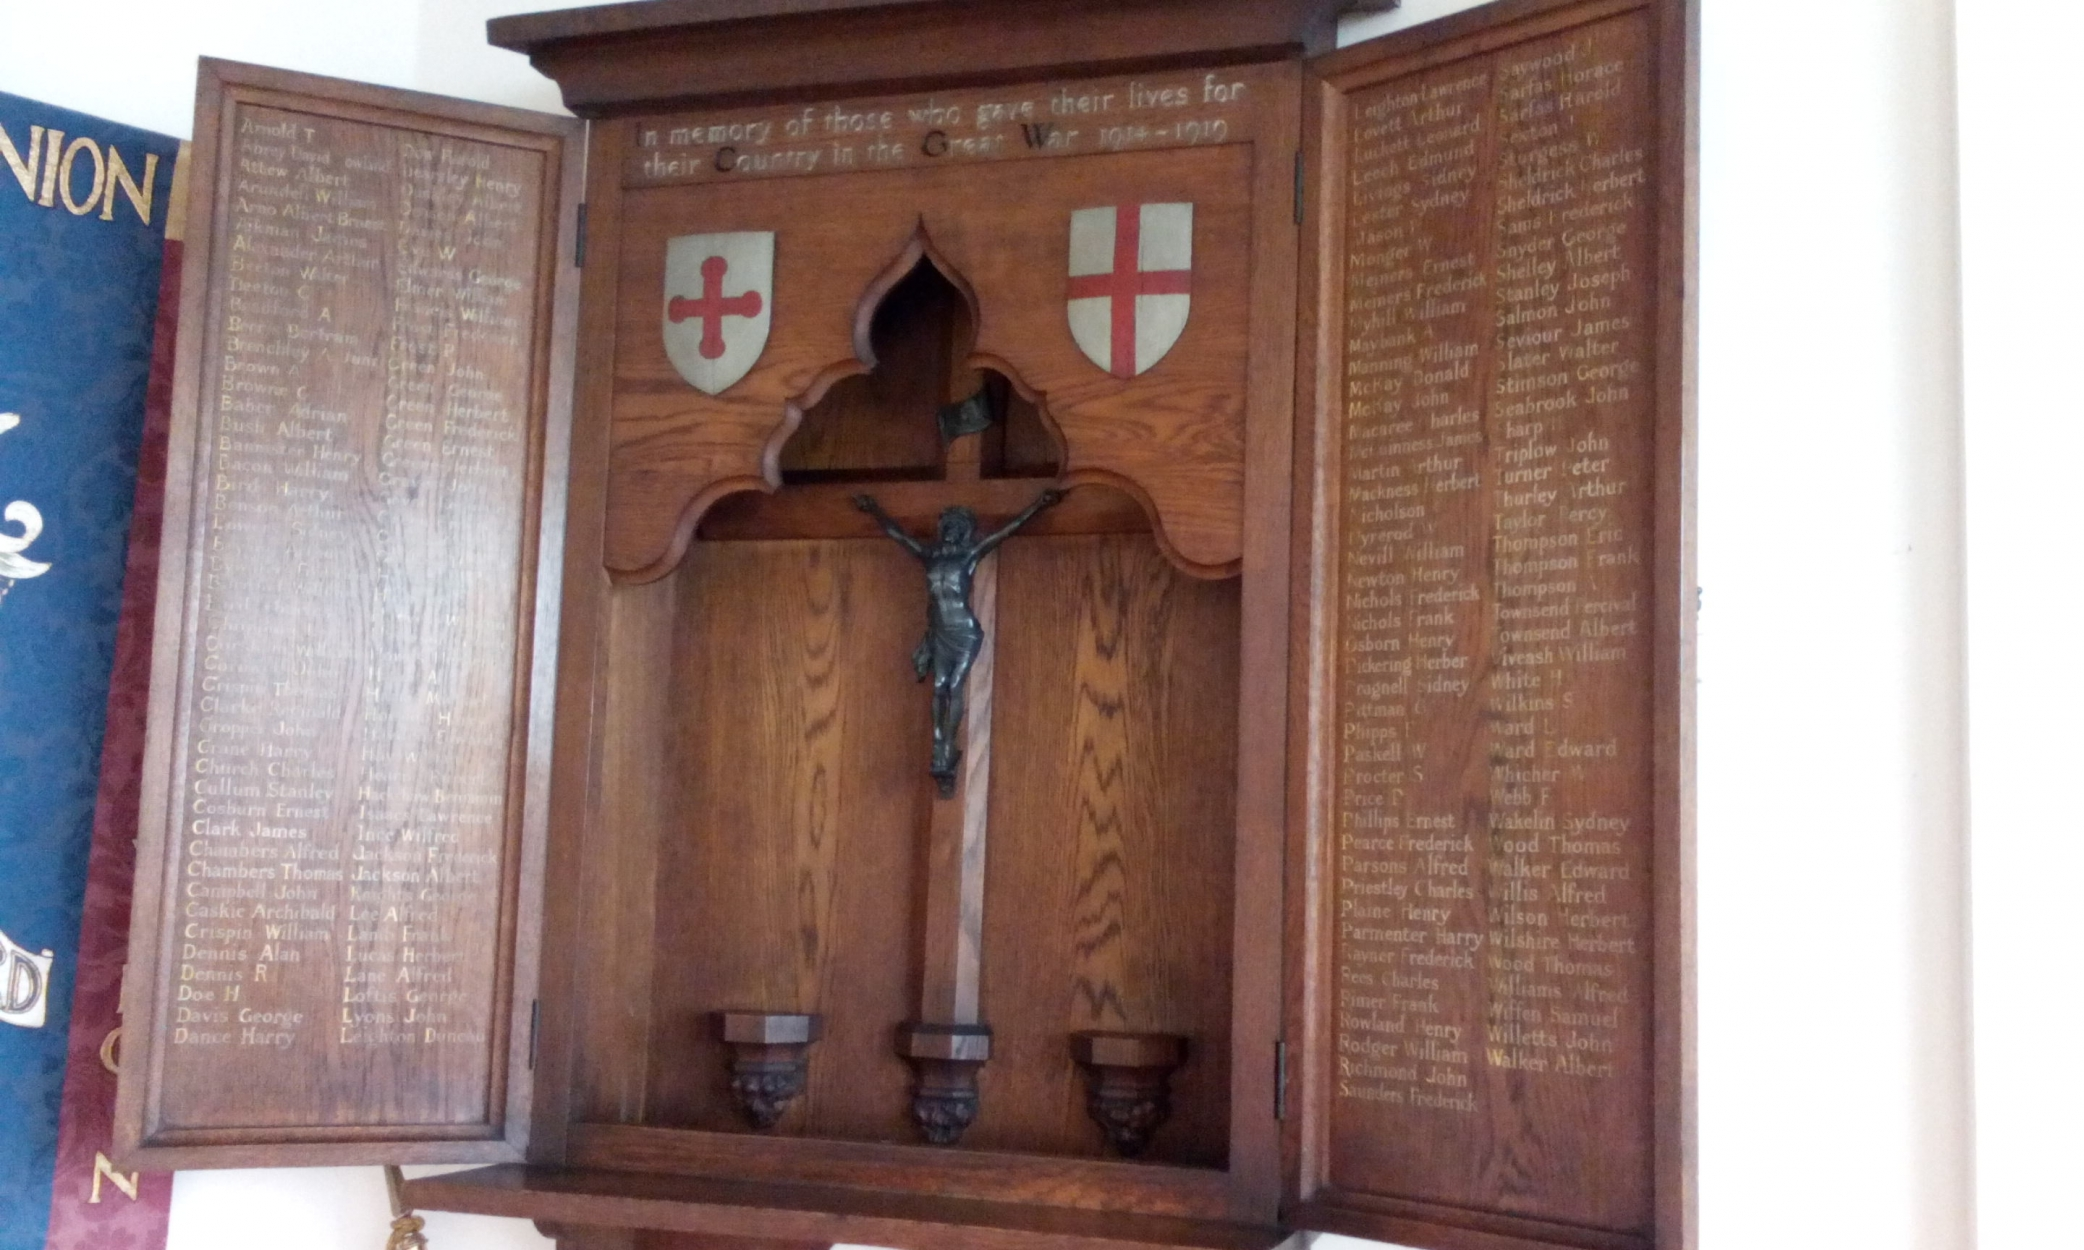 St Michael and All Angels, Little Ilford - War Memorials Online